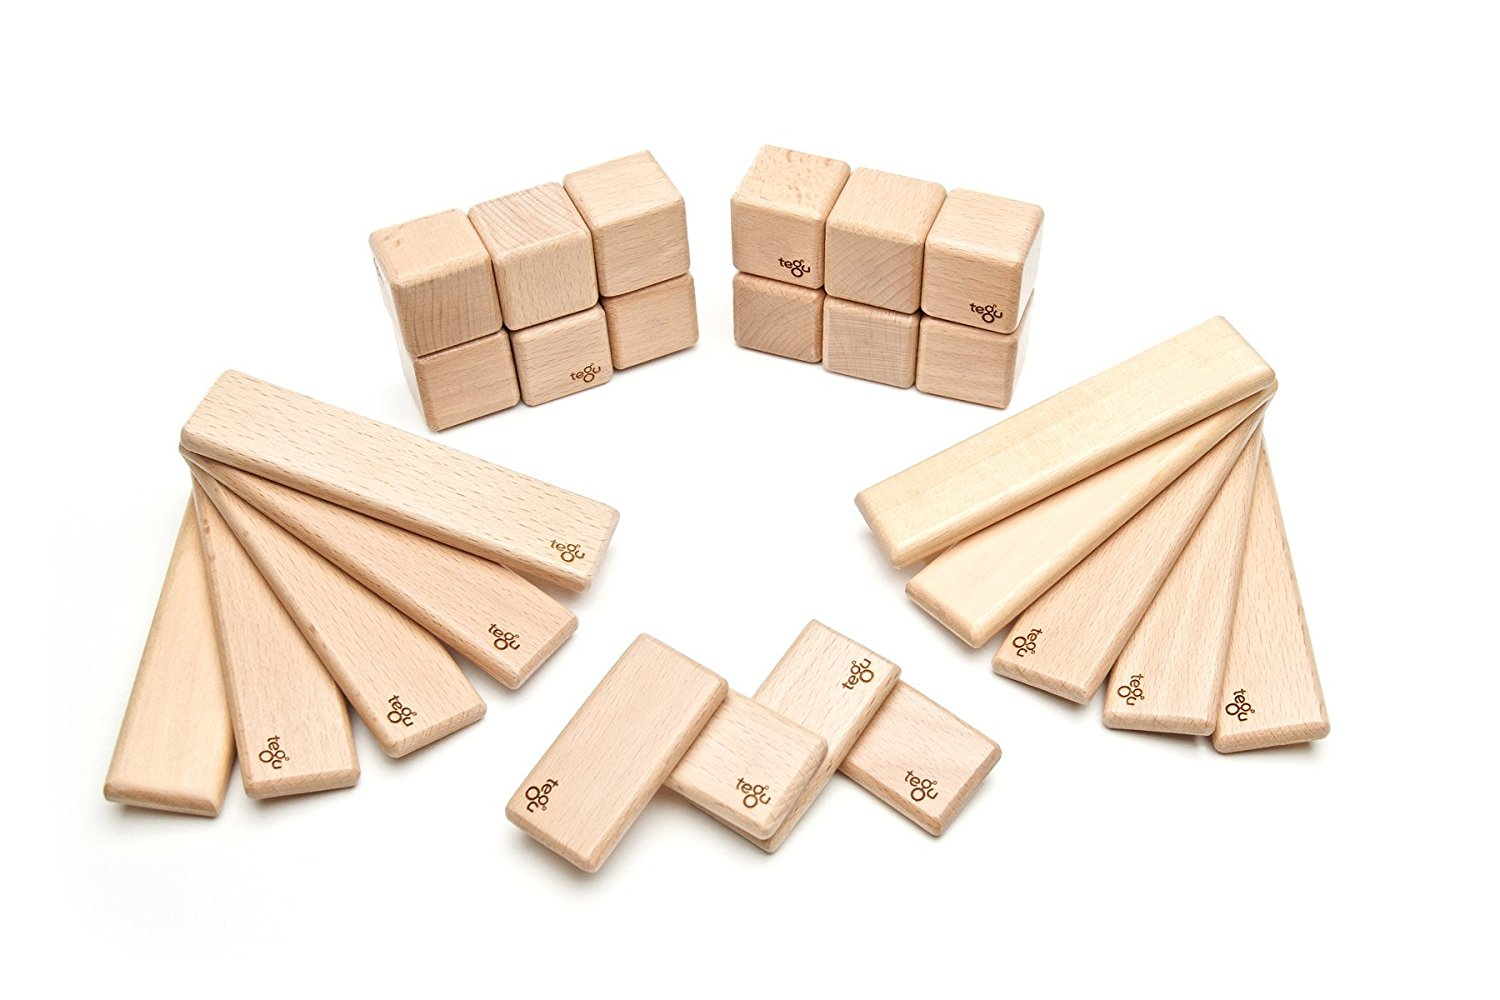 Tegu 26 Piece Discovery Magnetic Wooden Block Set, Natural by